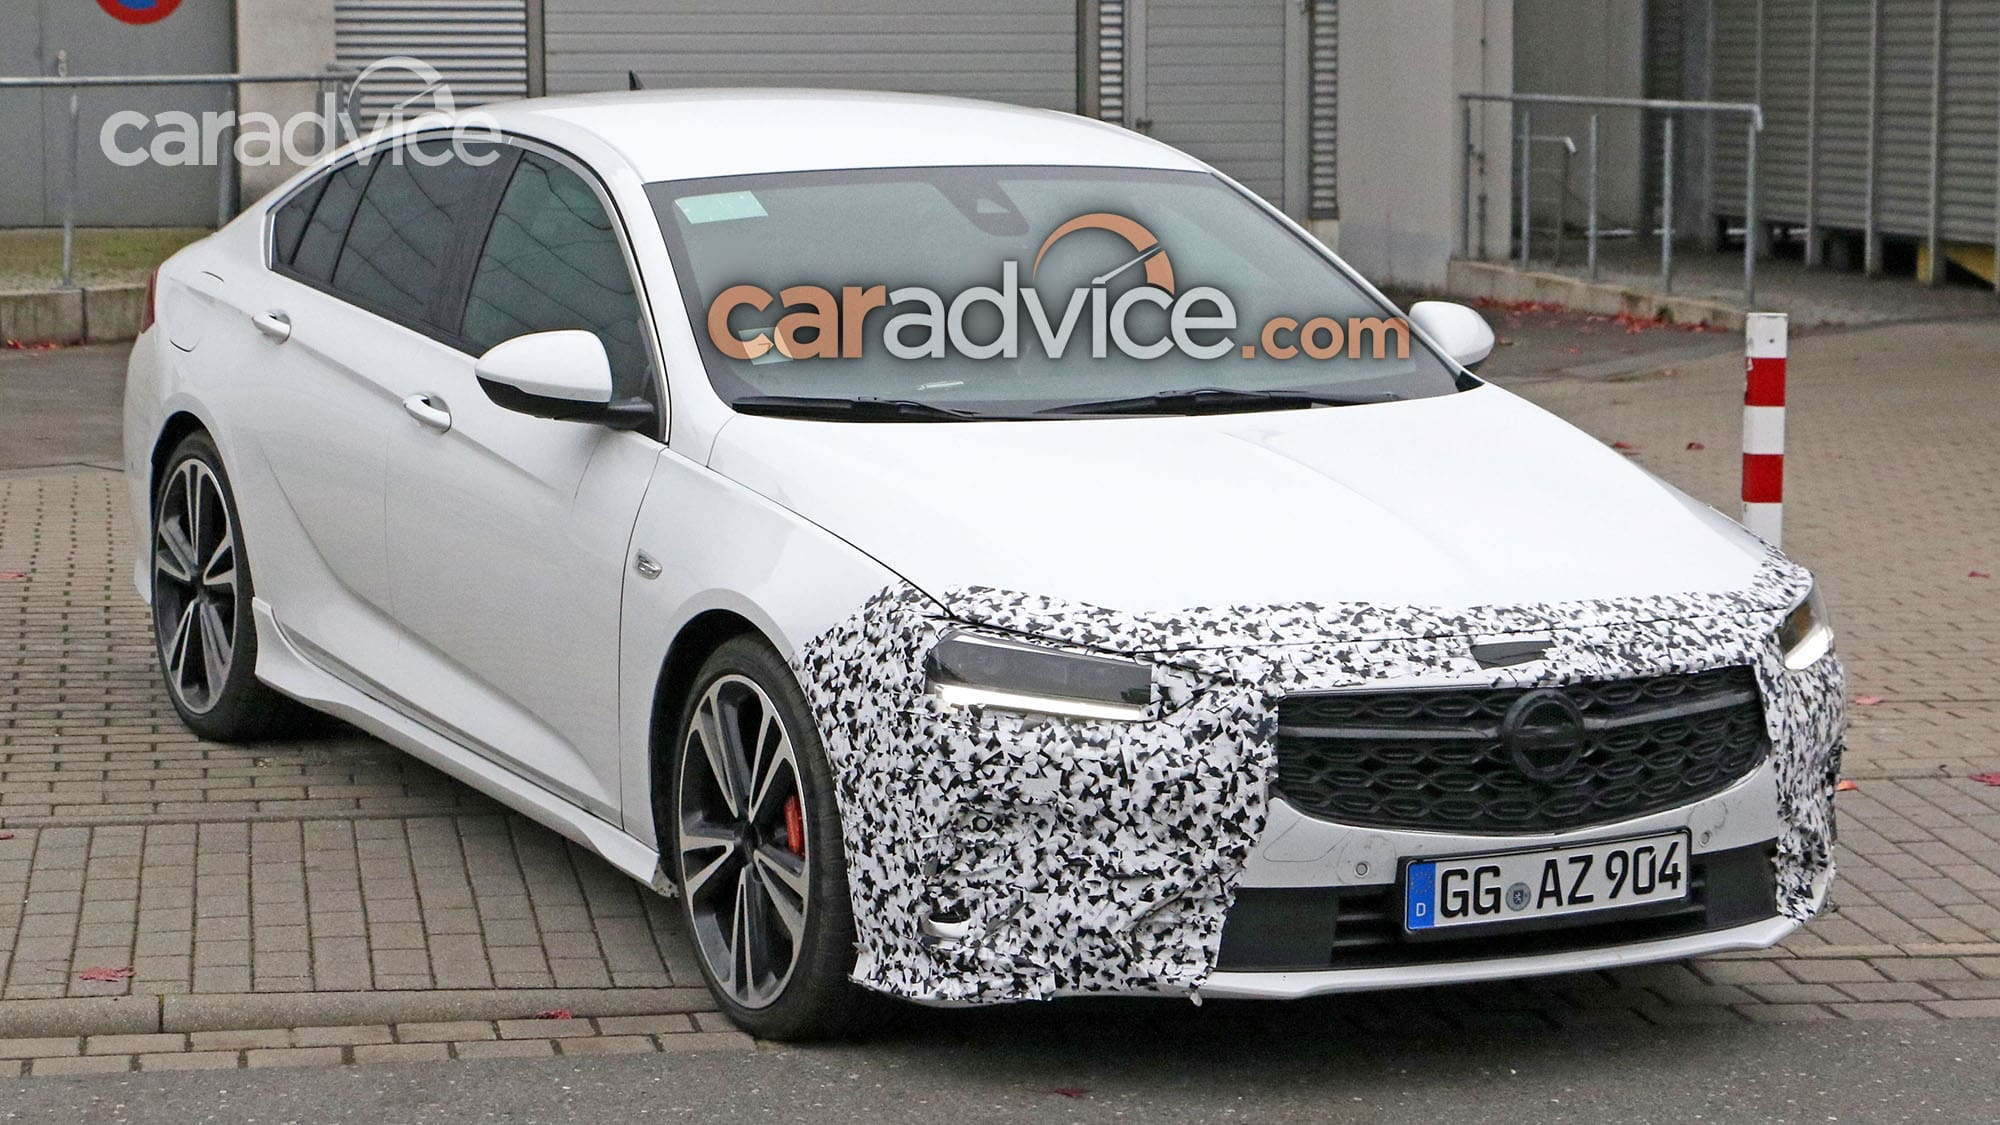 2020 holden commodore spied with less camouflage  caradvice